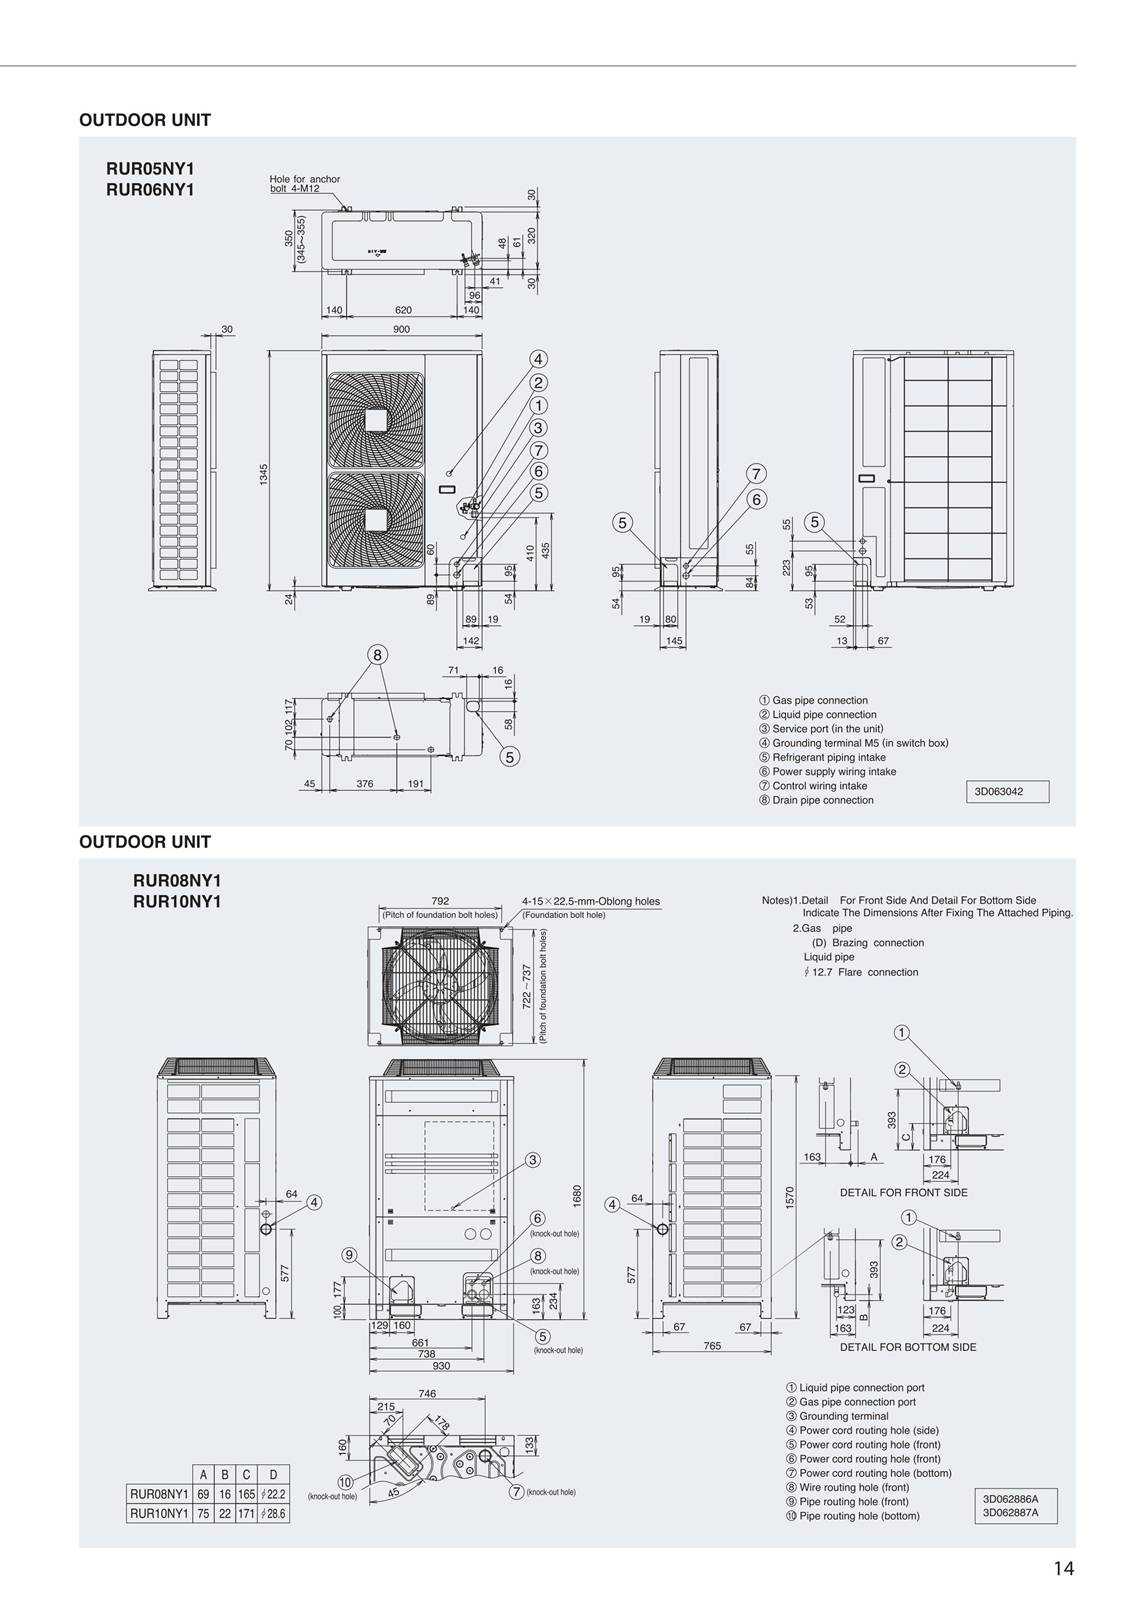 Wiring diagram ac cassette daikin free download wiring diagram free download wiring diagram daikin split duct high static of wiring diagram ac cassette daikin cheapraybanclubmaster Image collections